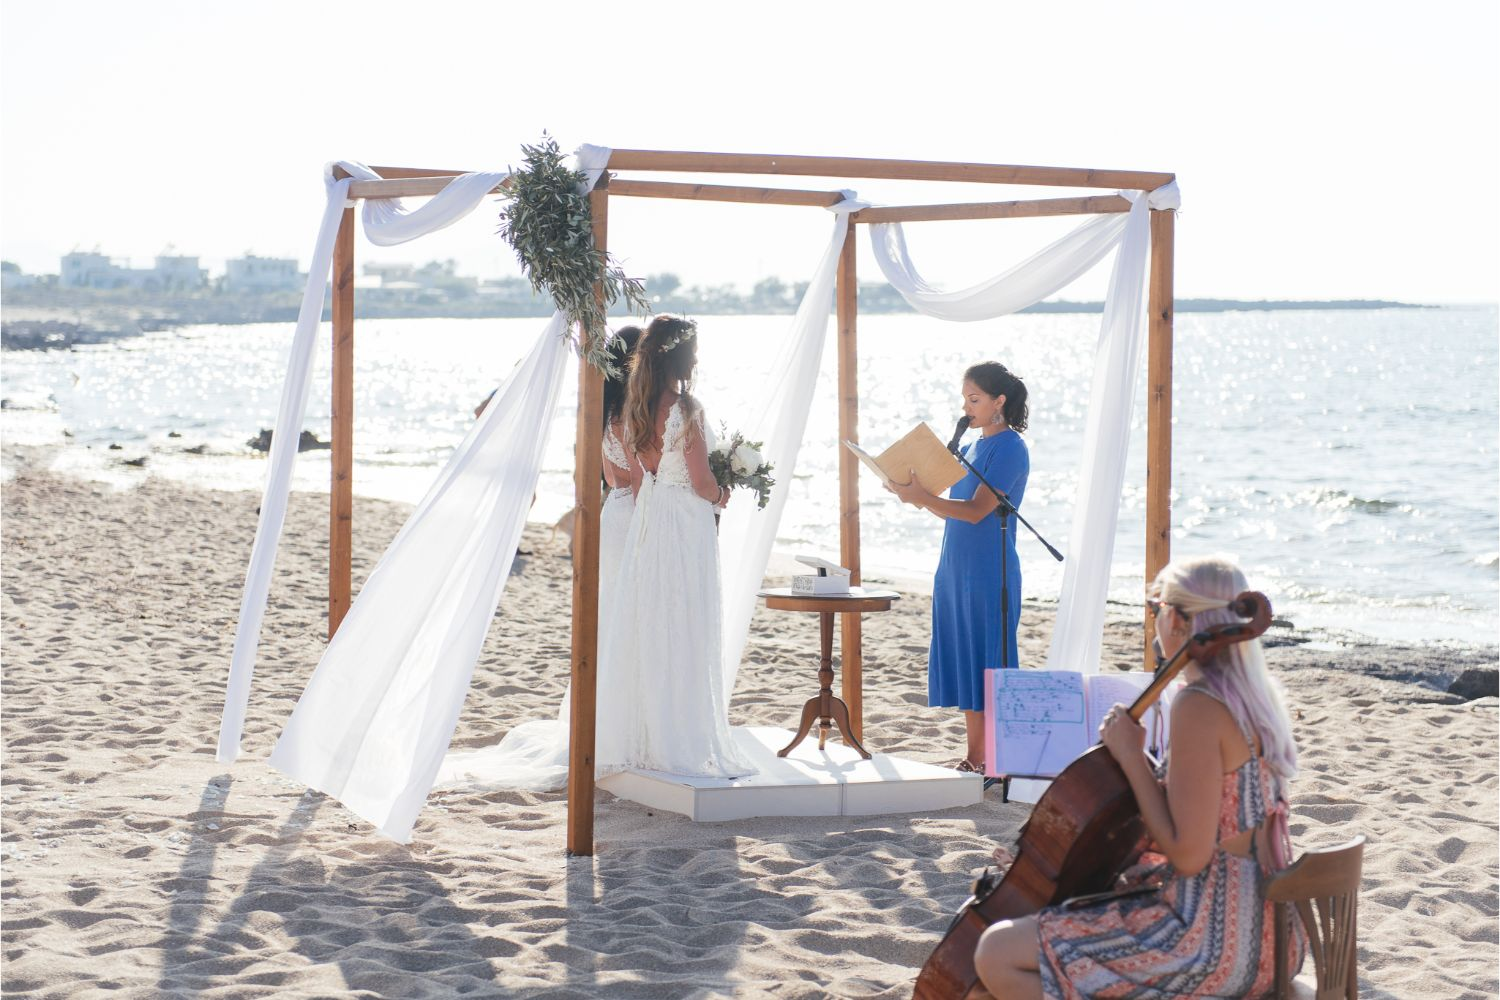 same-sex wedding ceremony on the beach